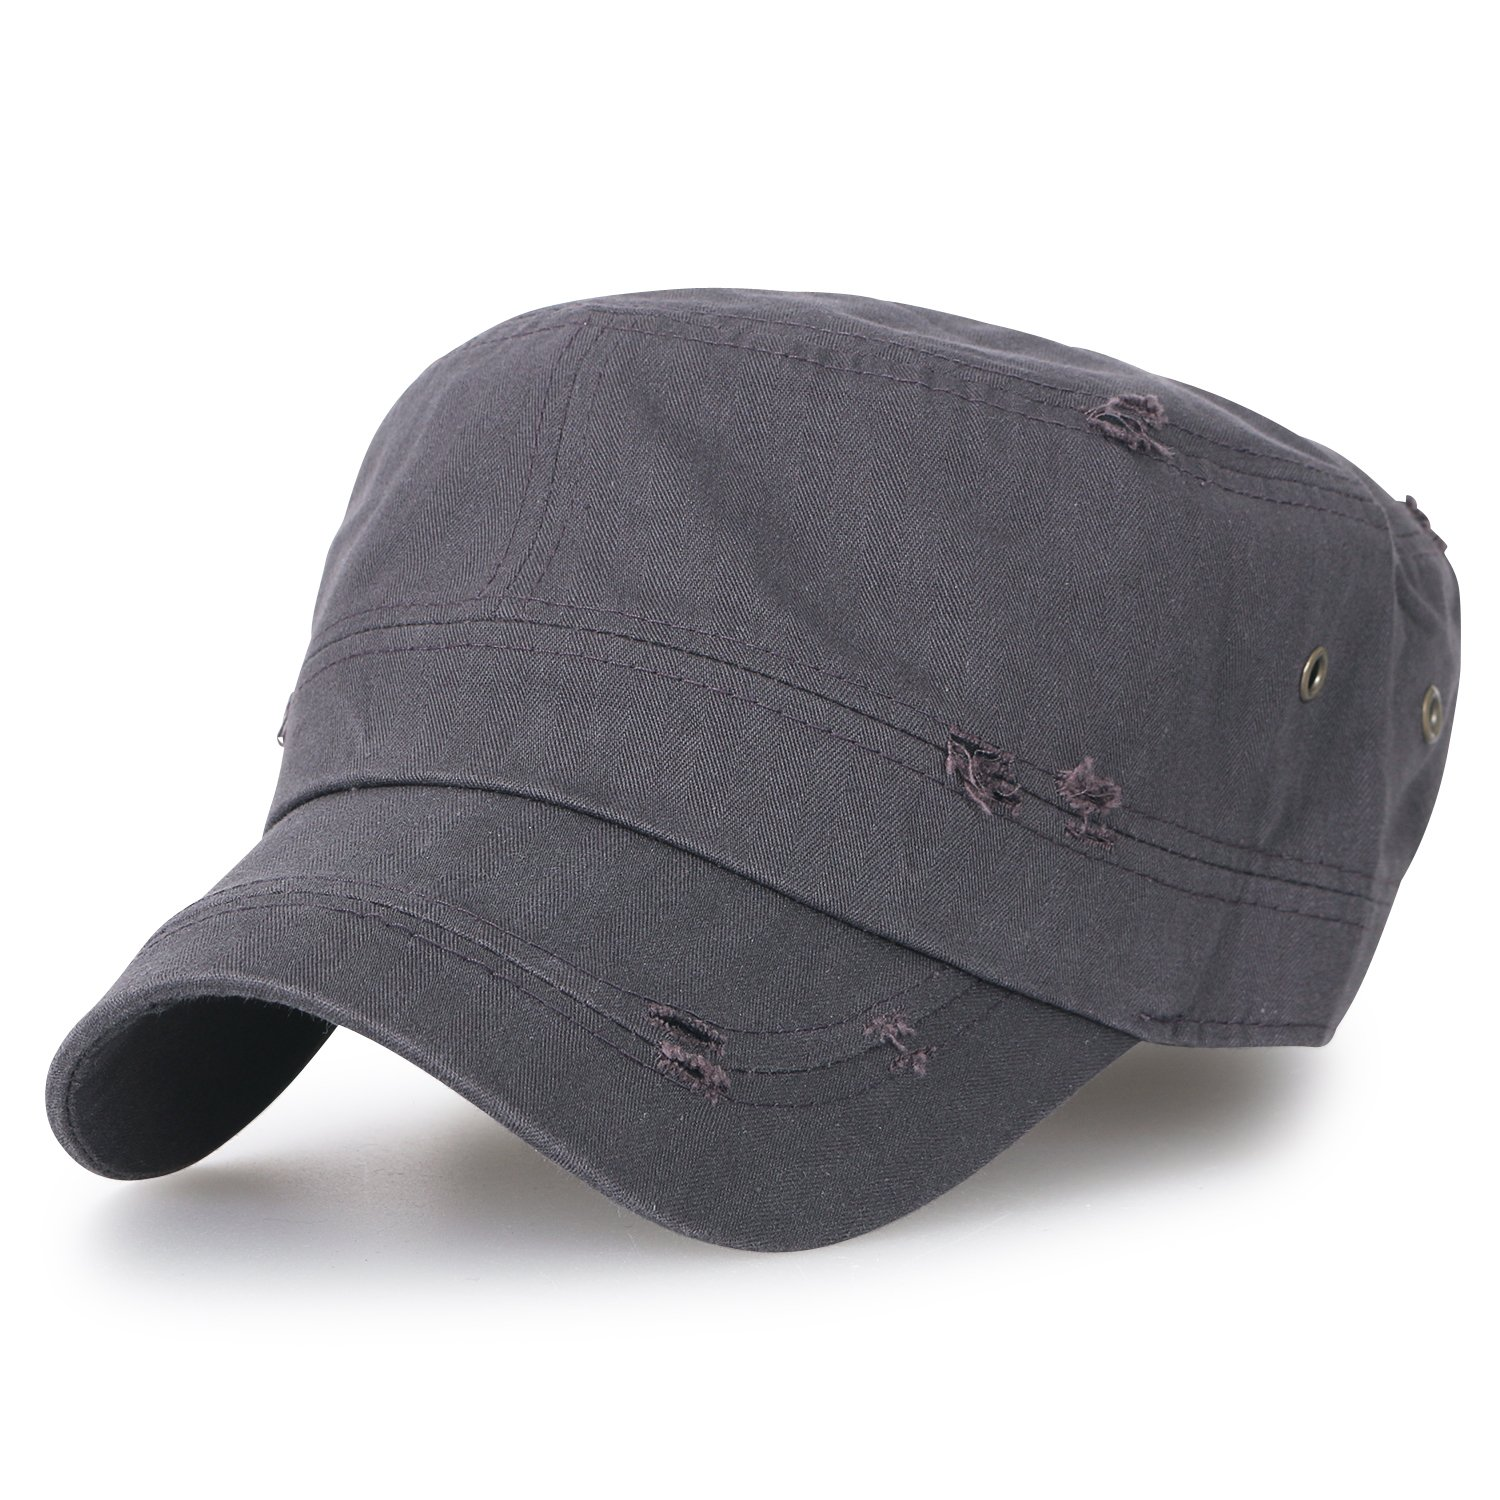 a4f6e967b23 ililily Large Size Solid Color Military Army Hat Washed Cotton Vintage  Cadet Cap  Amazon.co.uk  Clothing